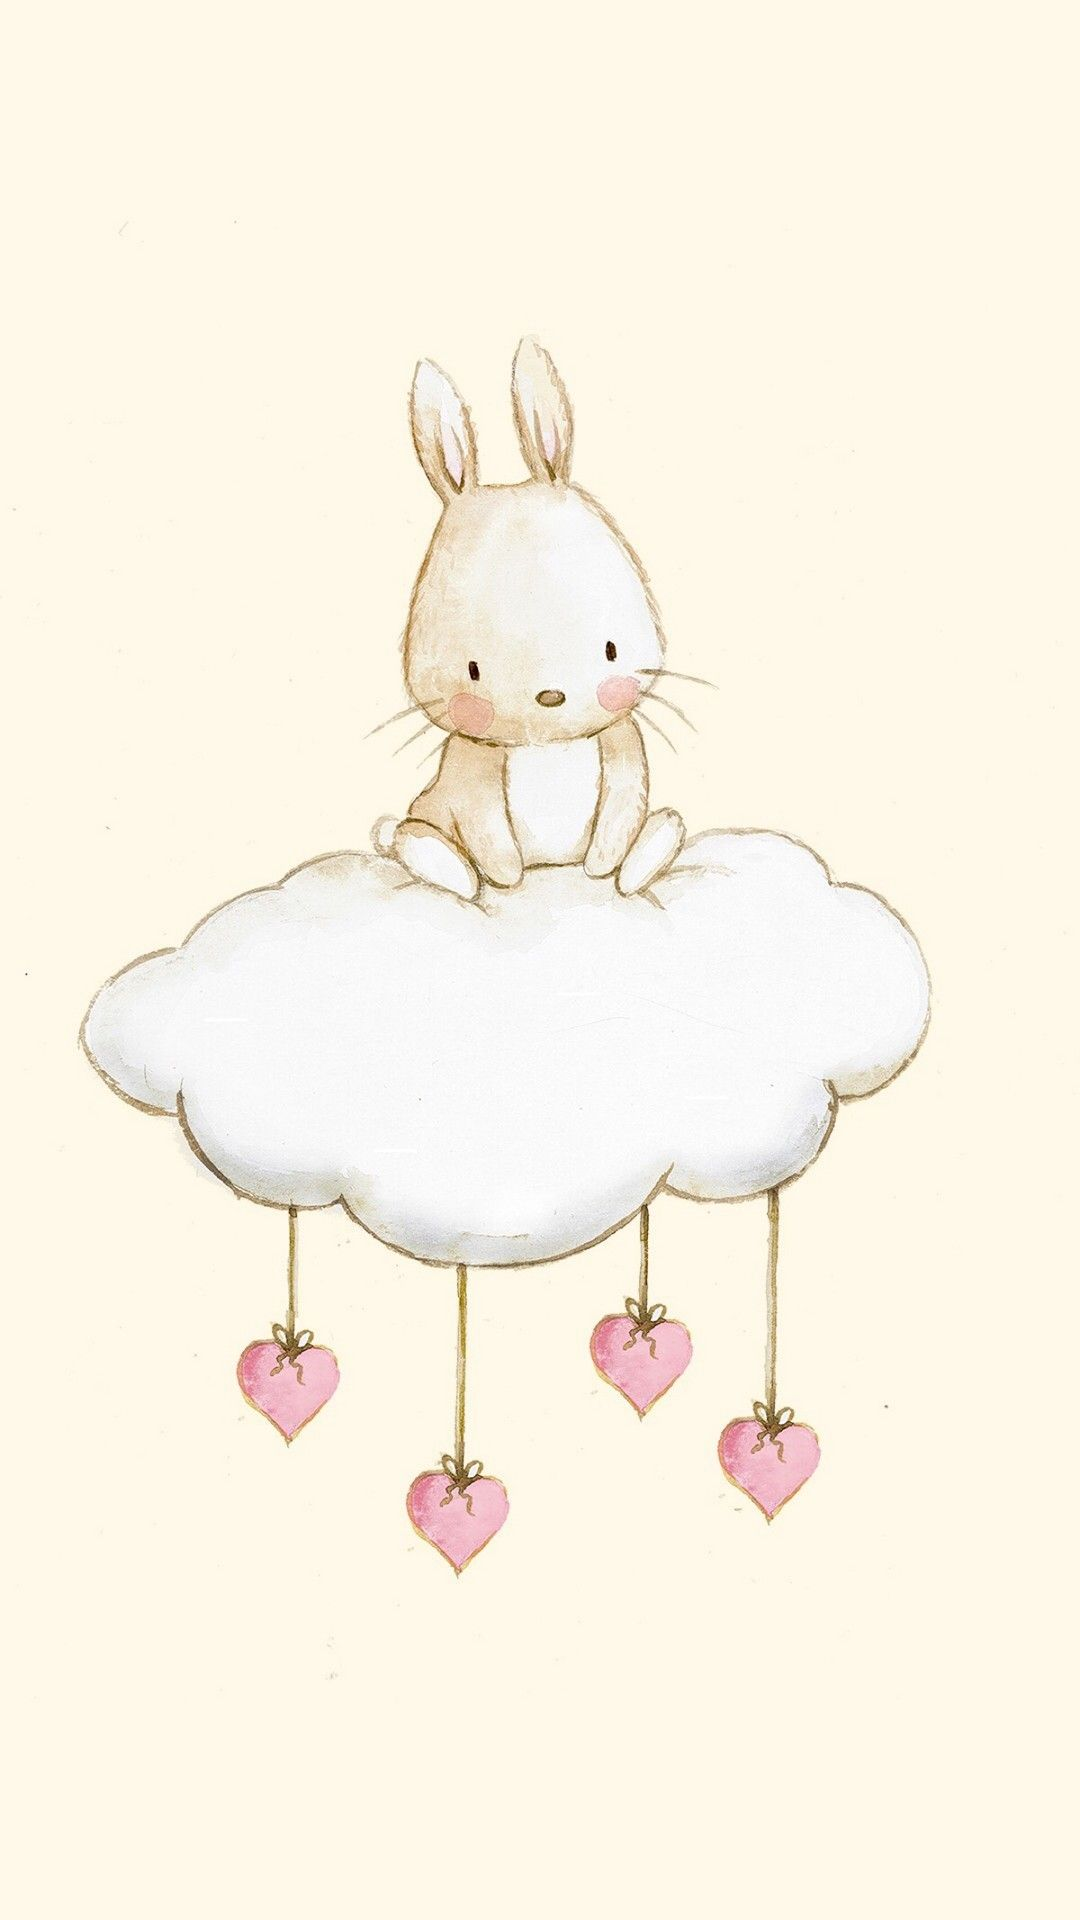 Epingle Par Dina Sur Girly Wallpapers Dessins Mignons Art